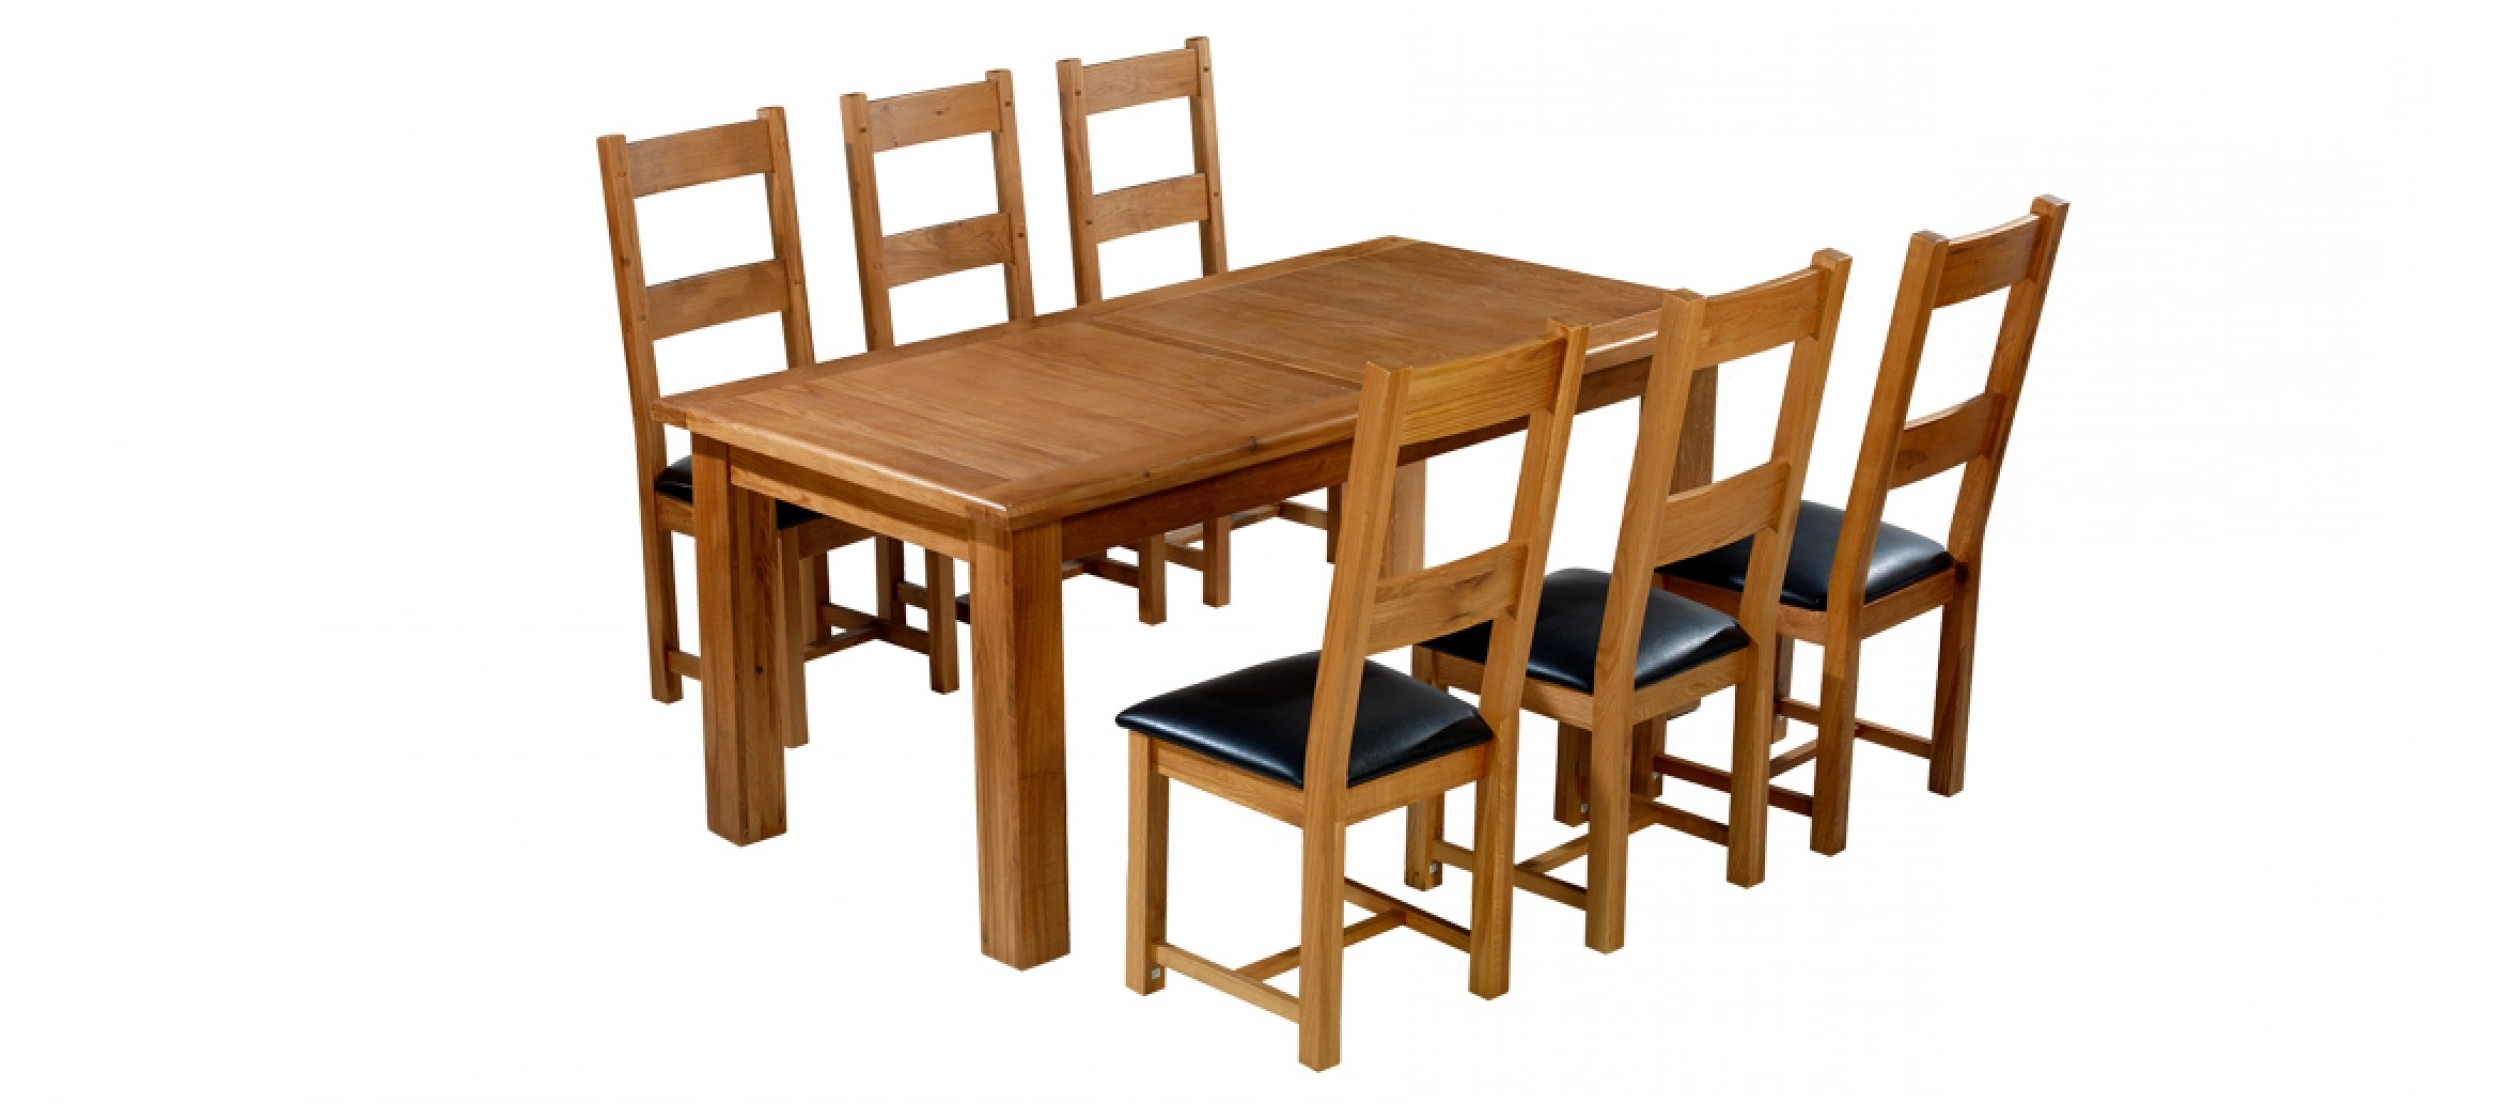 Barham Oak 180 250 Cm Extending Dining Table And 6 Chairs (Gallery 18 of 25)